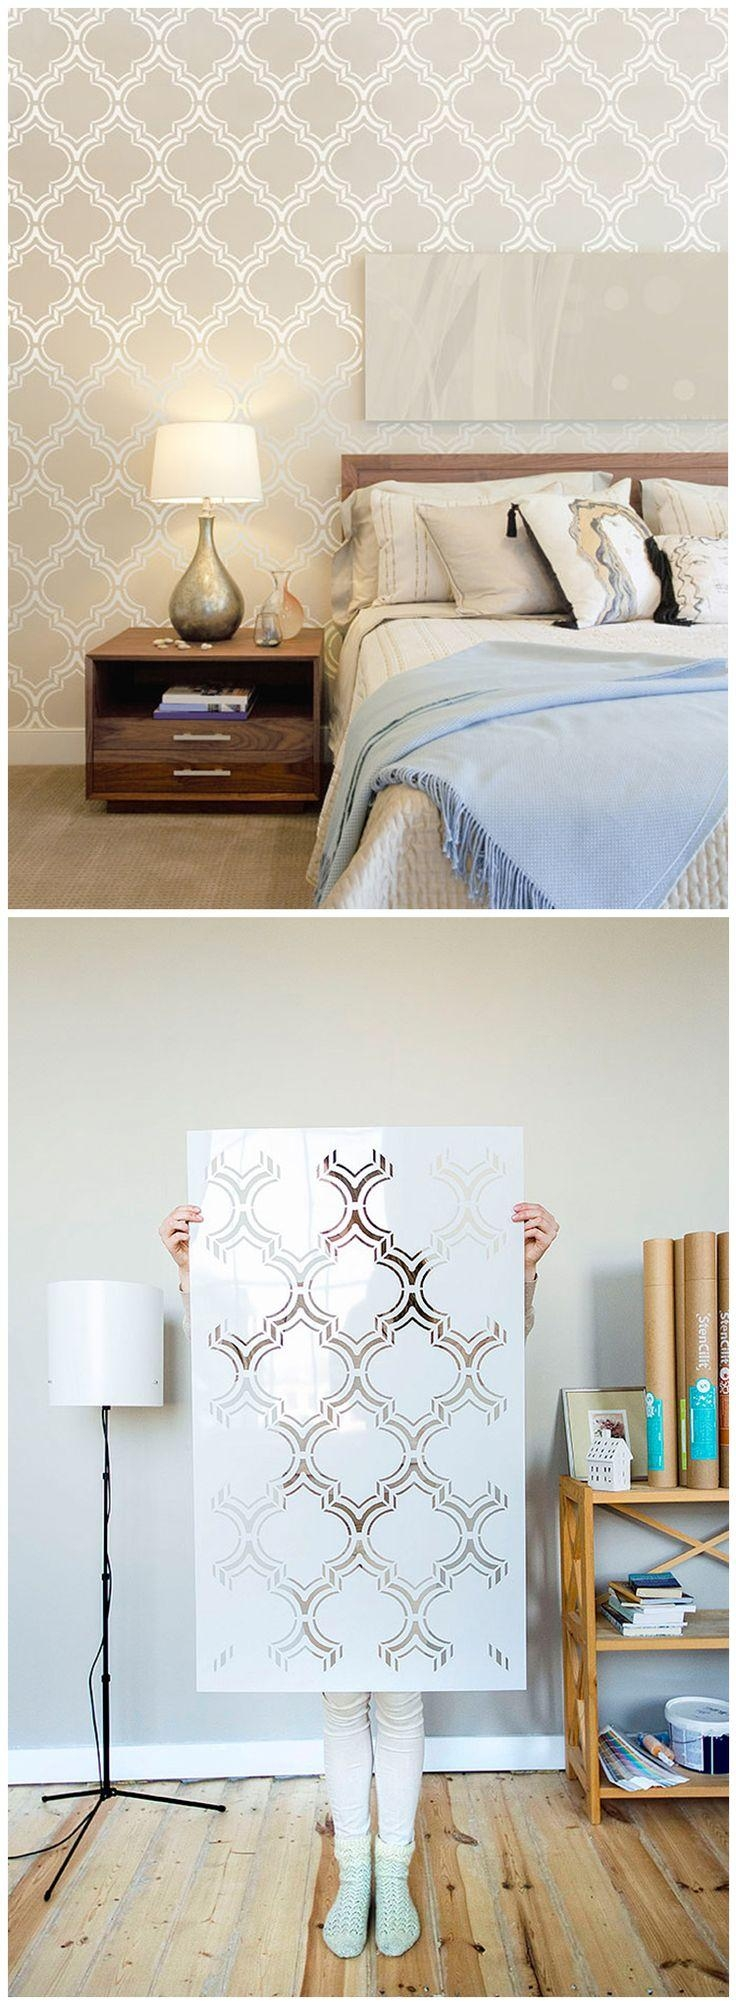 25+ Best Moroccan Wall Stencils Ideas On Pinterest | Moroccan Regarding Space Stencils For Walls (Image 2 of 20)